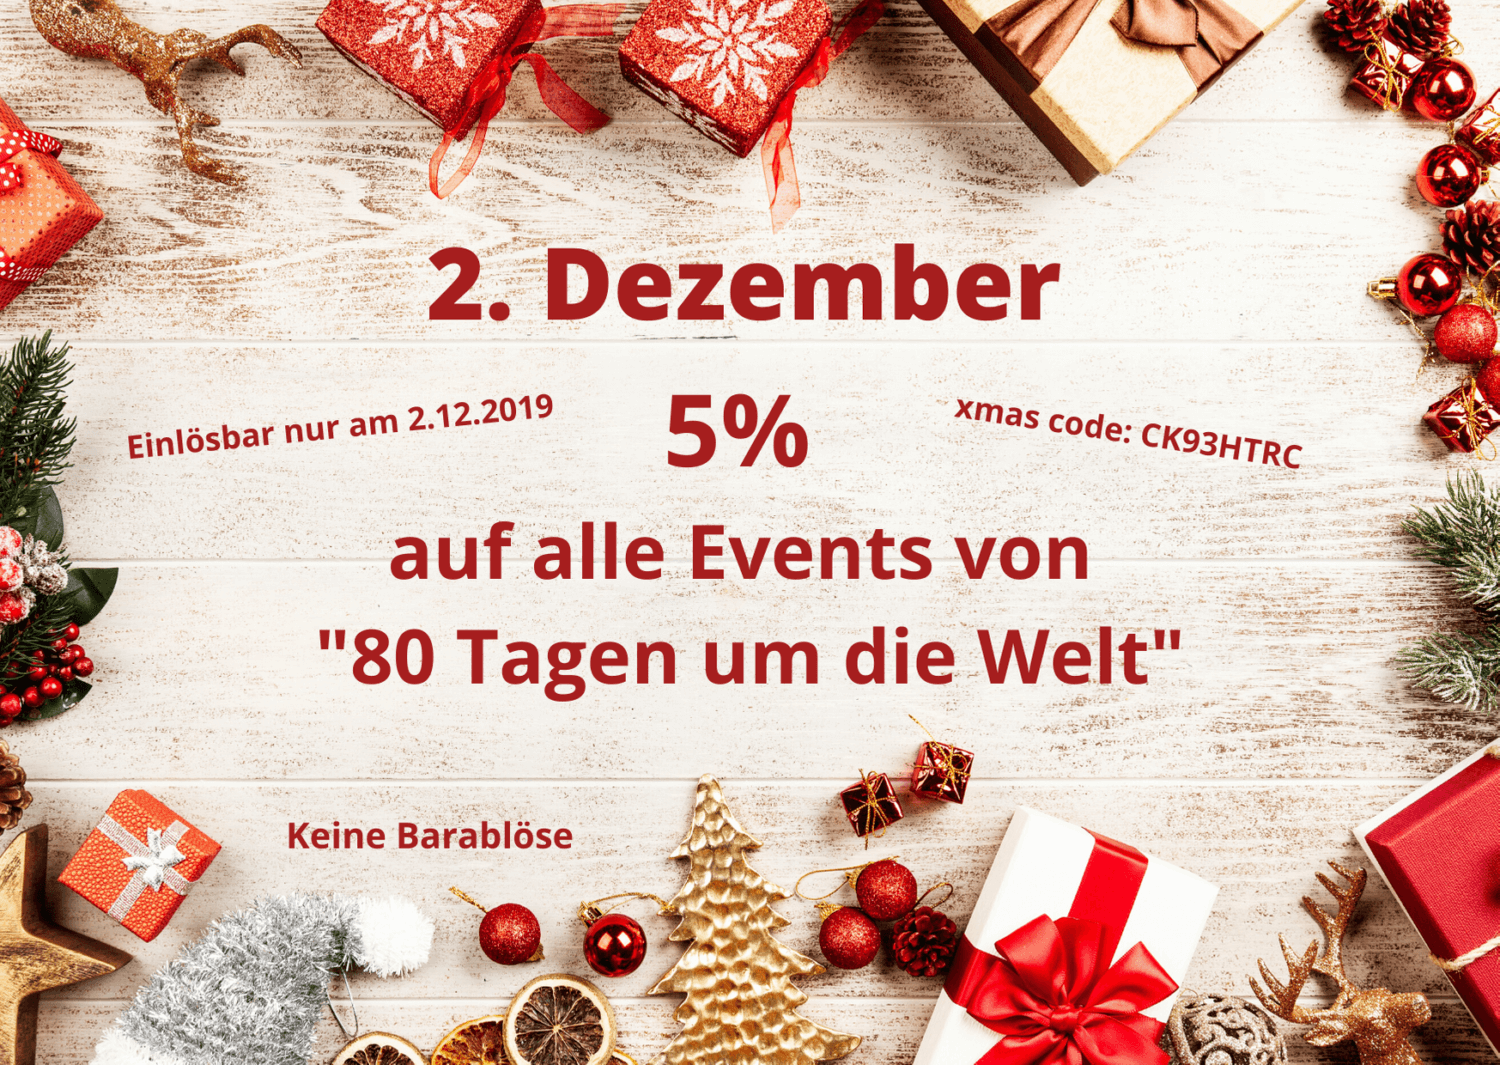 Adventkalender 2. Türchen